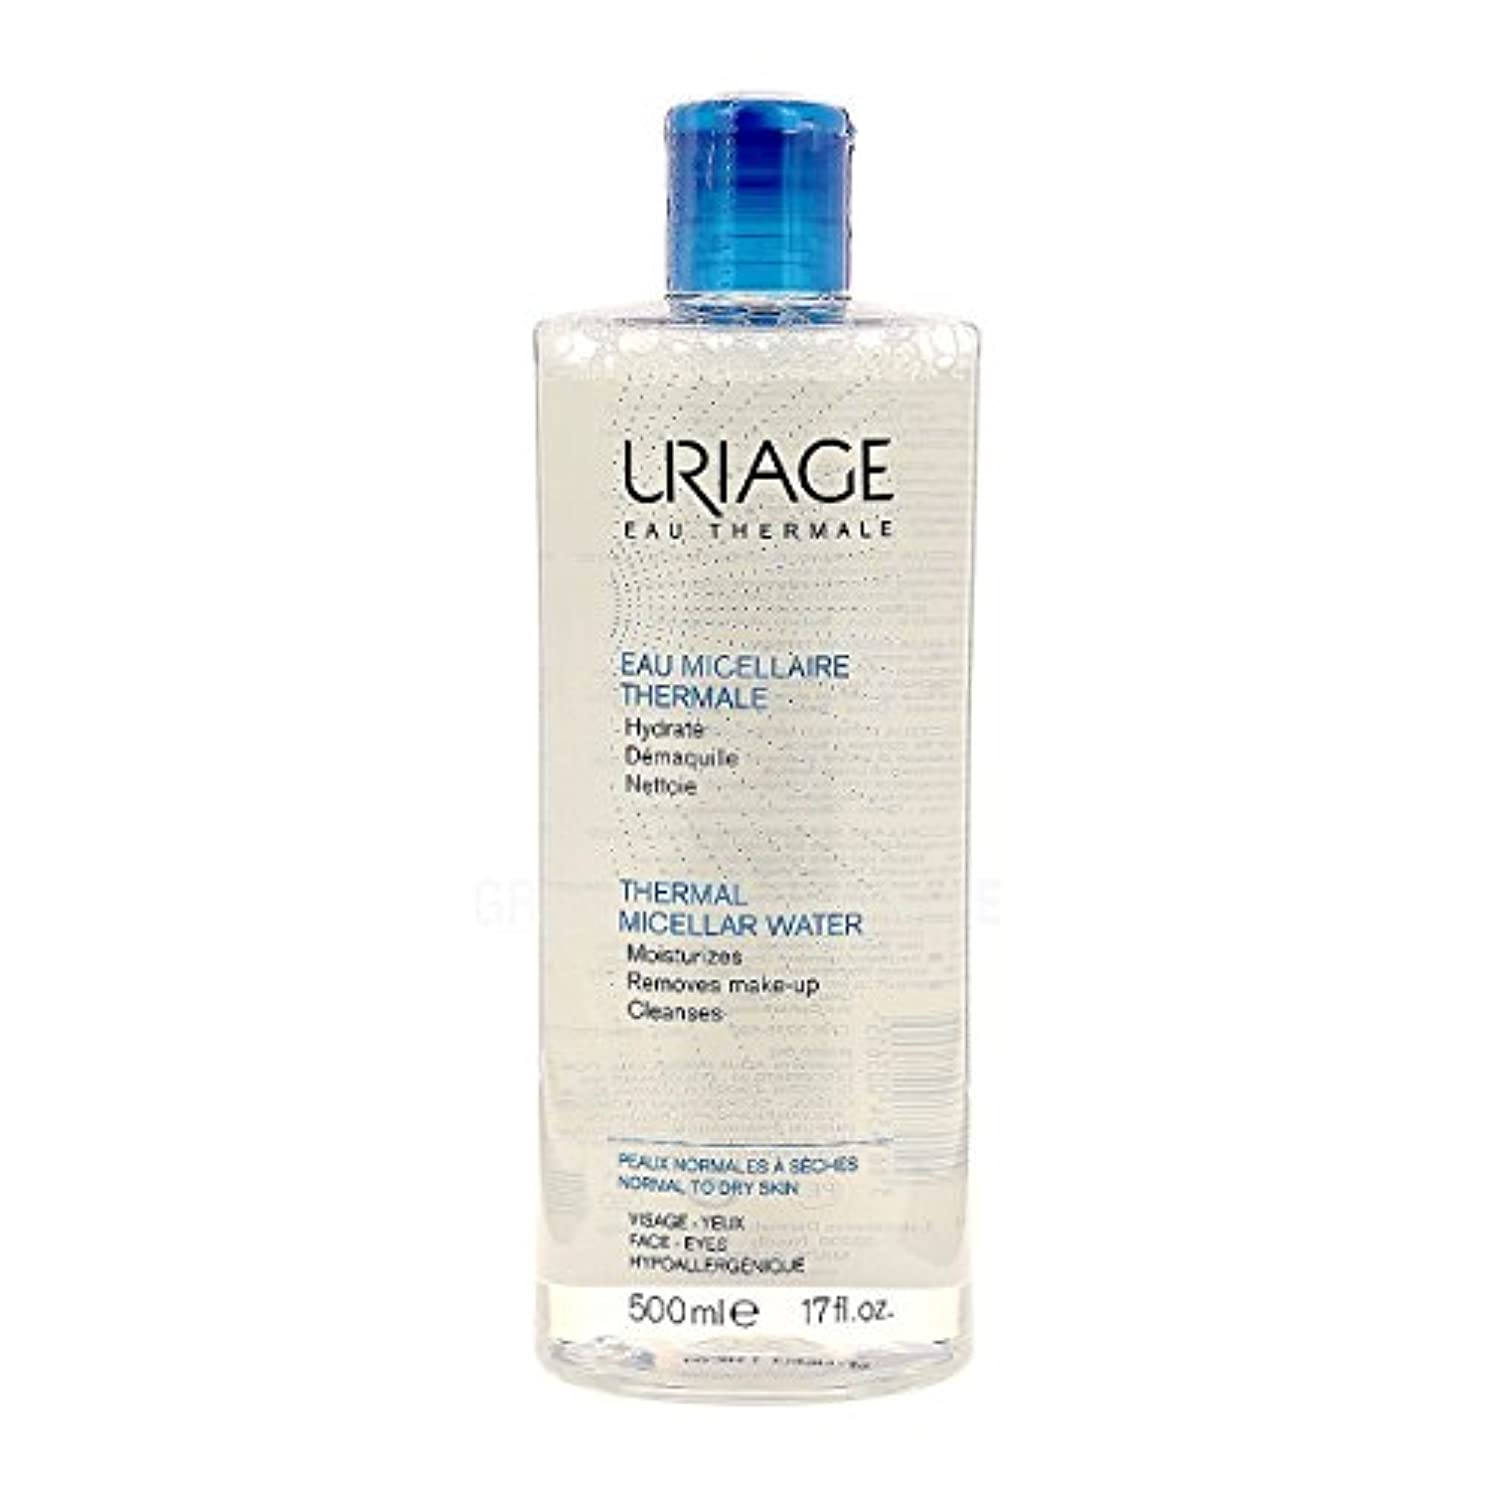 ポスト印象派分布抵抗Uriage Thermal Micellar Water Normal To Dry Skin 500ml [並行輸入品]